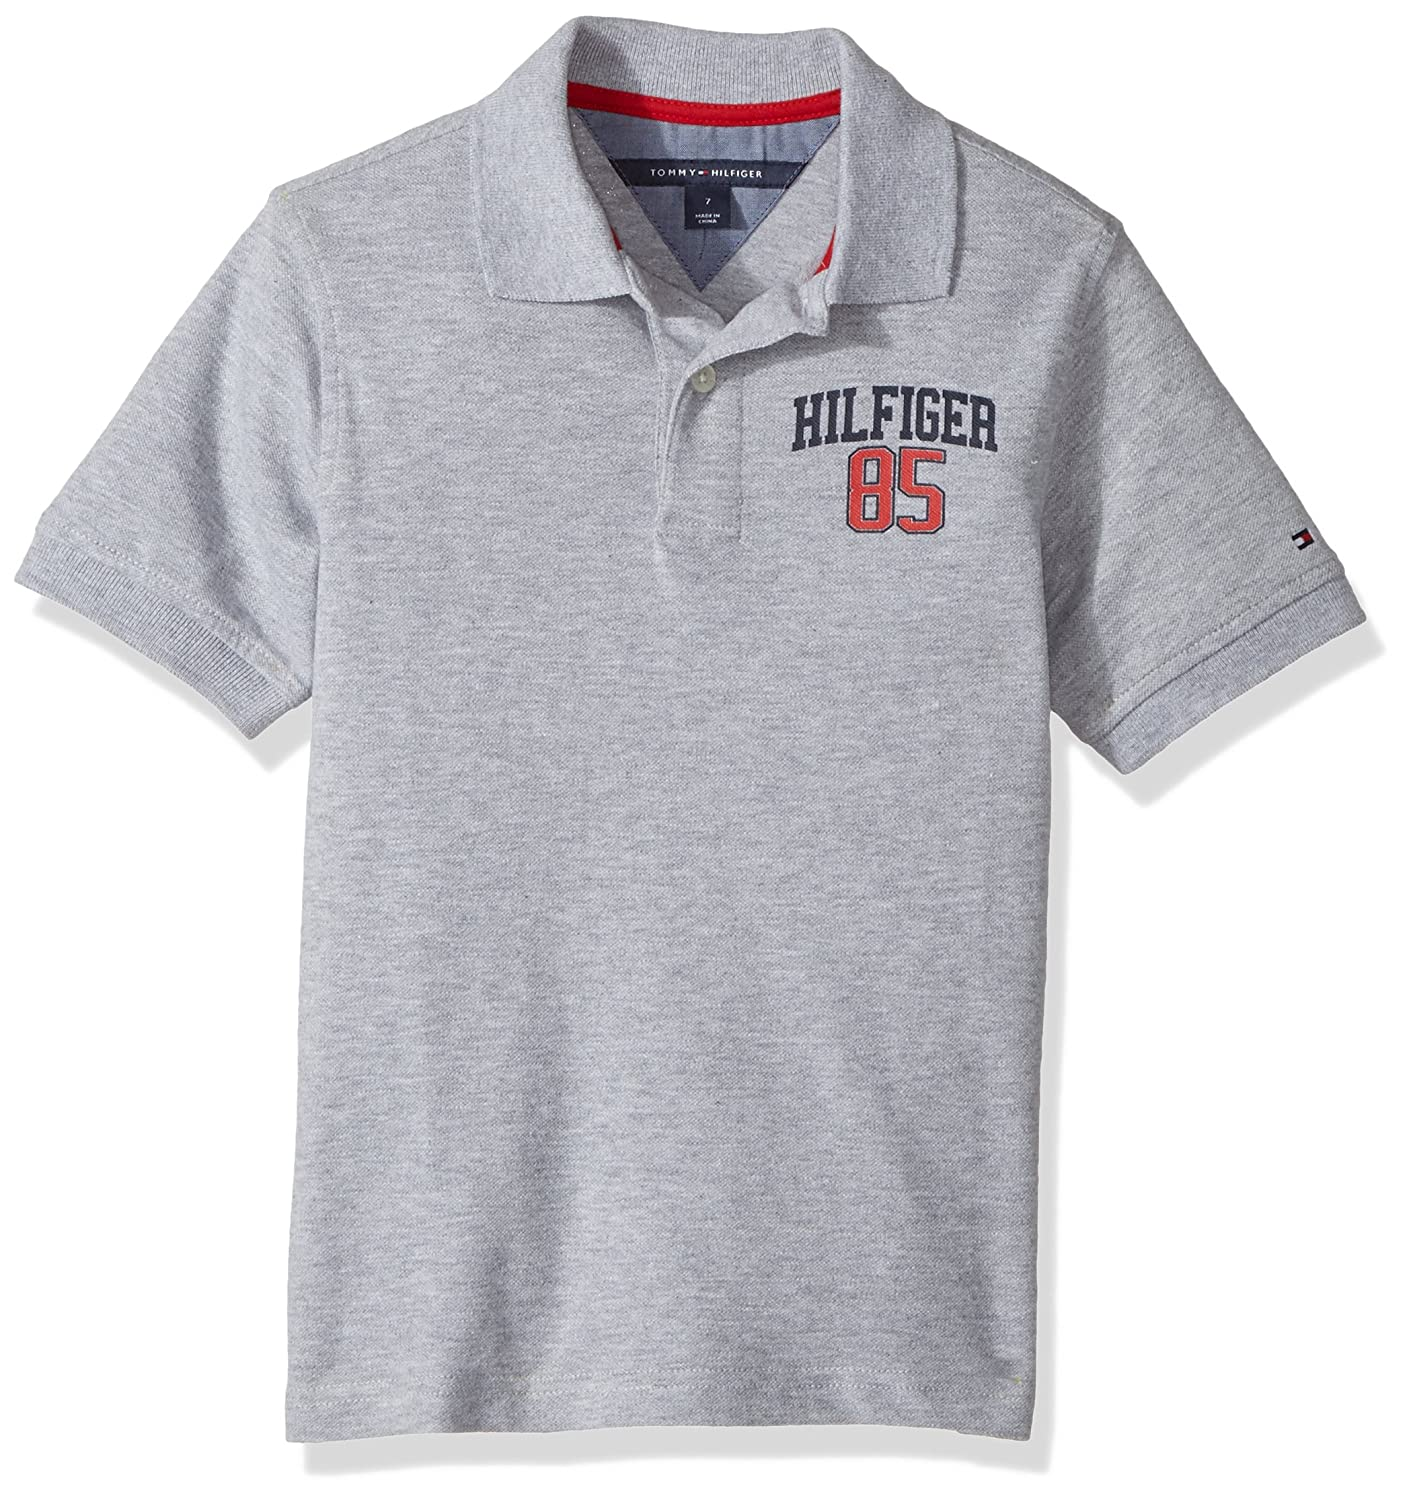 d3a618ff2 Online Cheap wholesale Tommy Hilfiger Boys Short Sleeve Logo Polo Shirt  Polos Suppliers